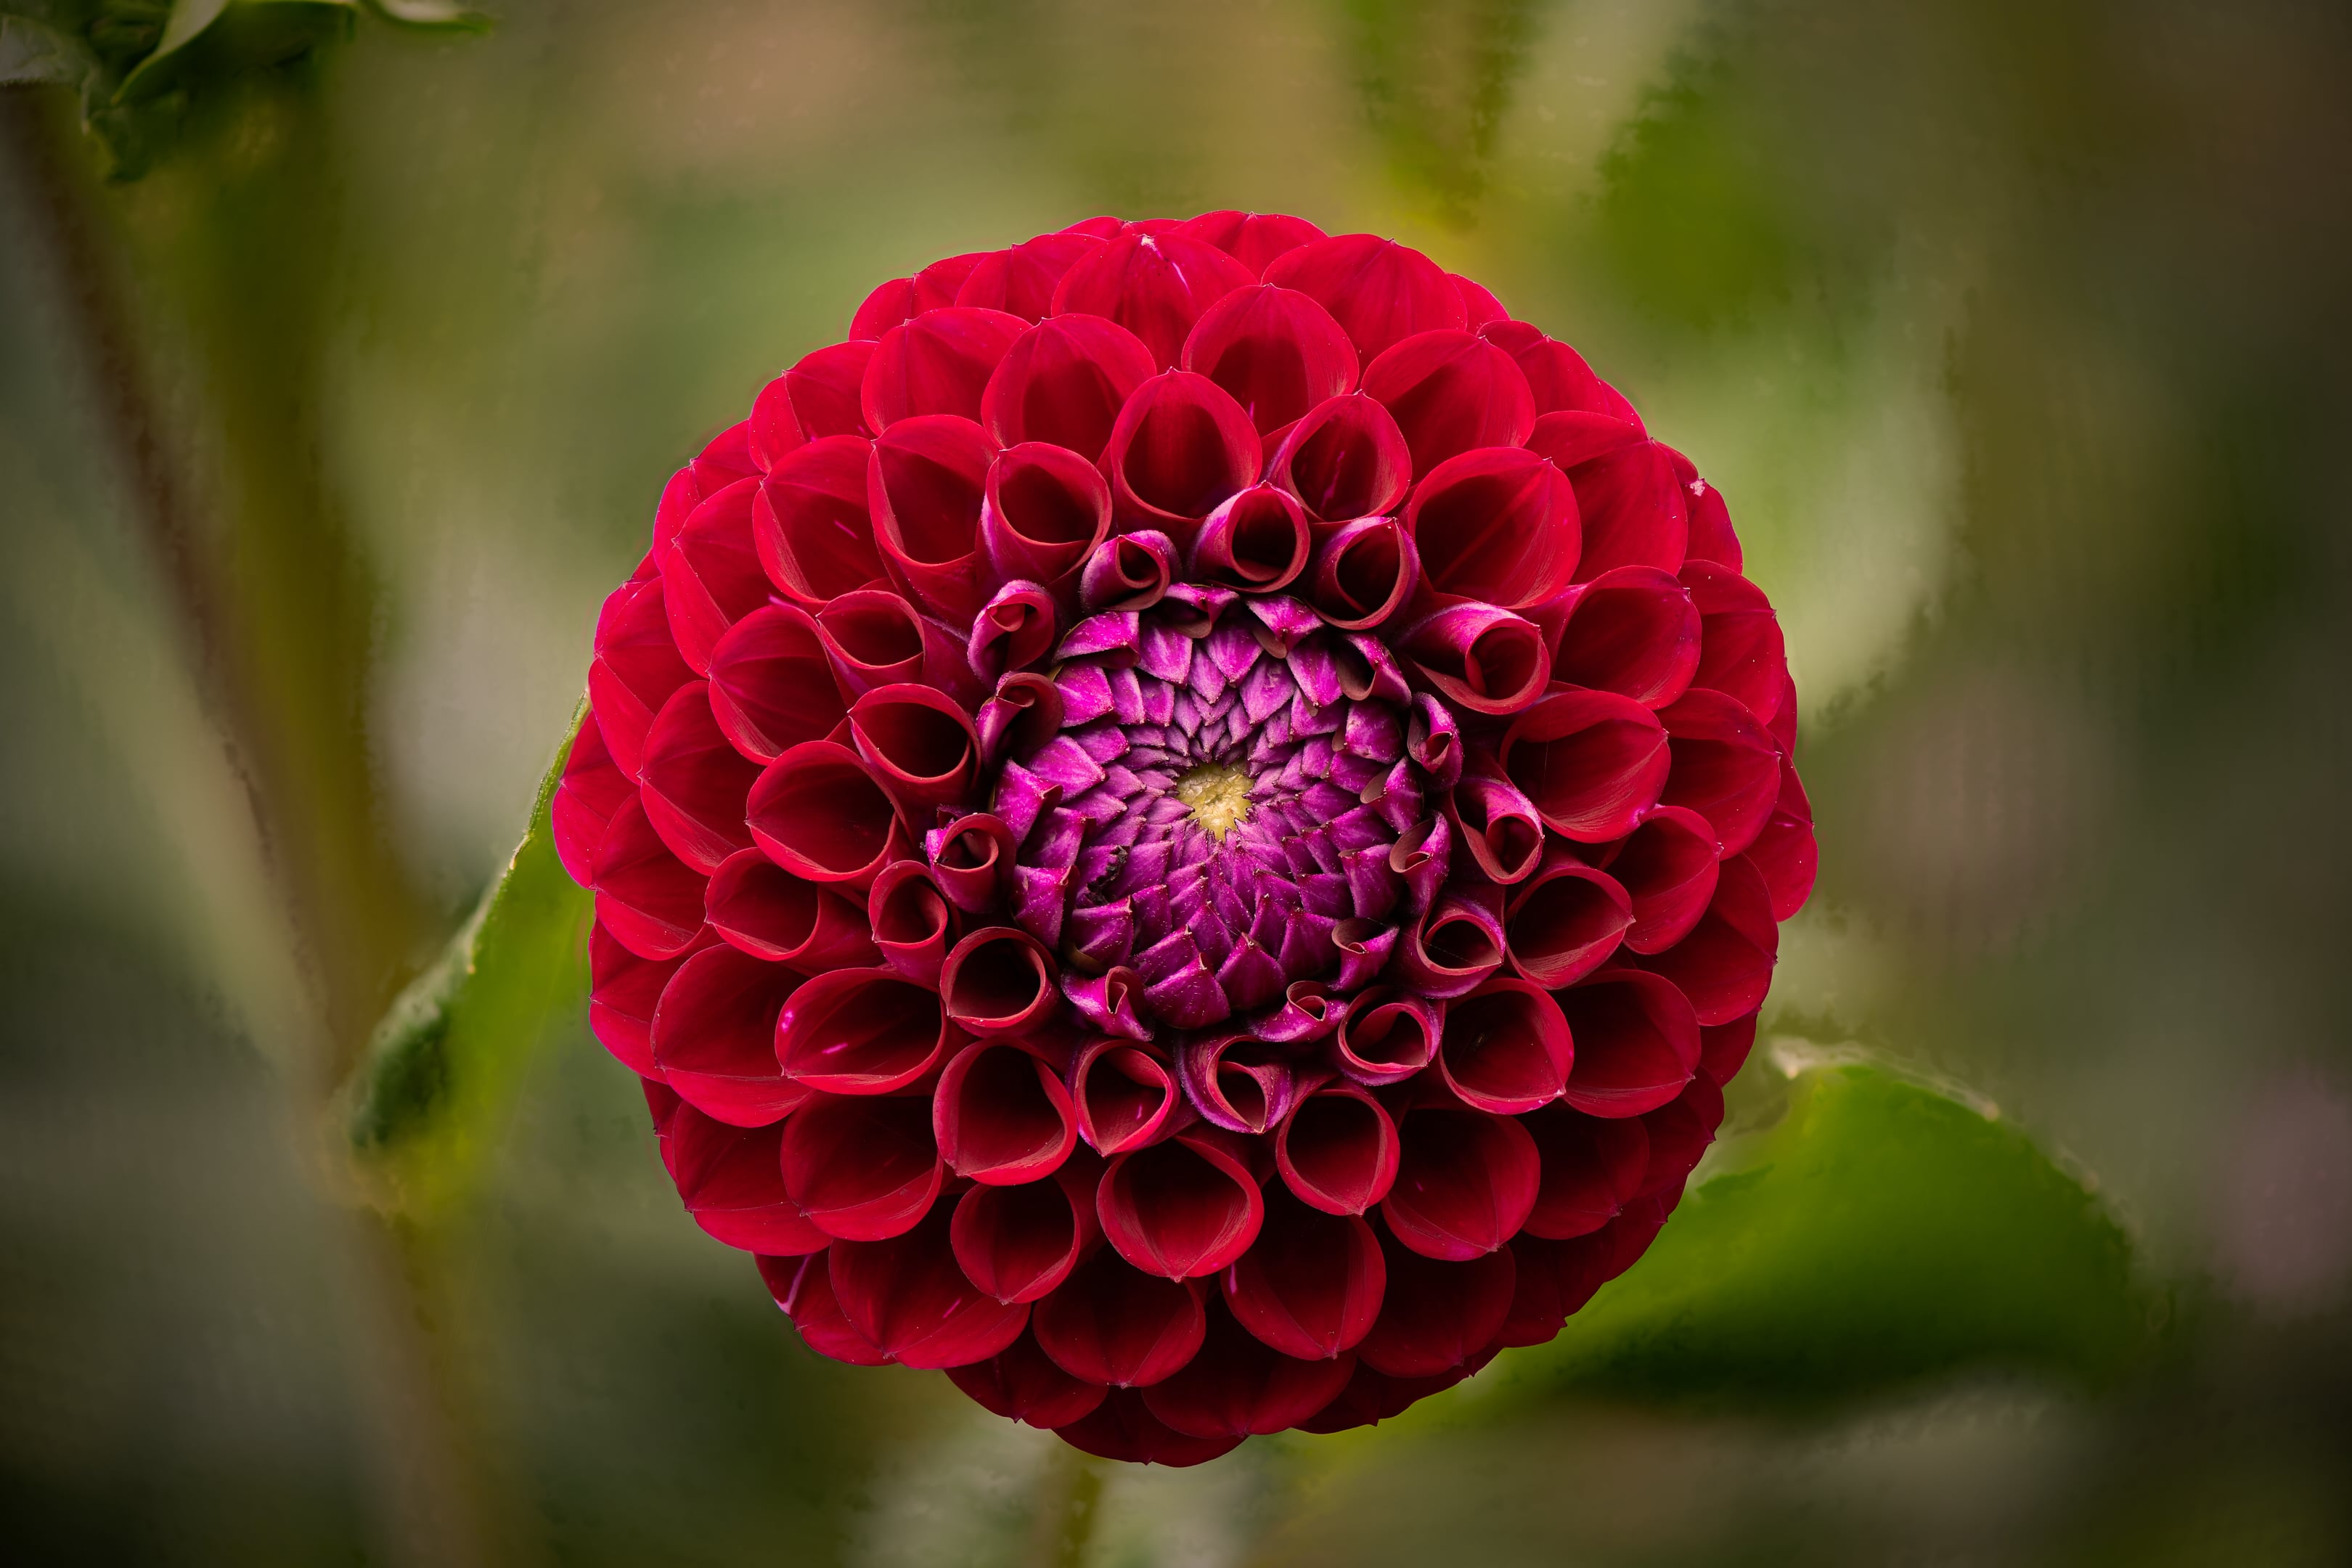 Nikon Z7 Focus Shift - Stacked with Zerene Stacker (DMap) - Flower